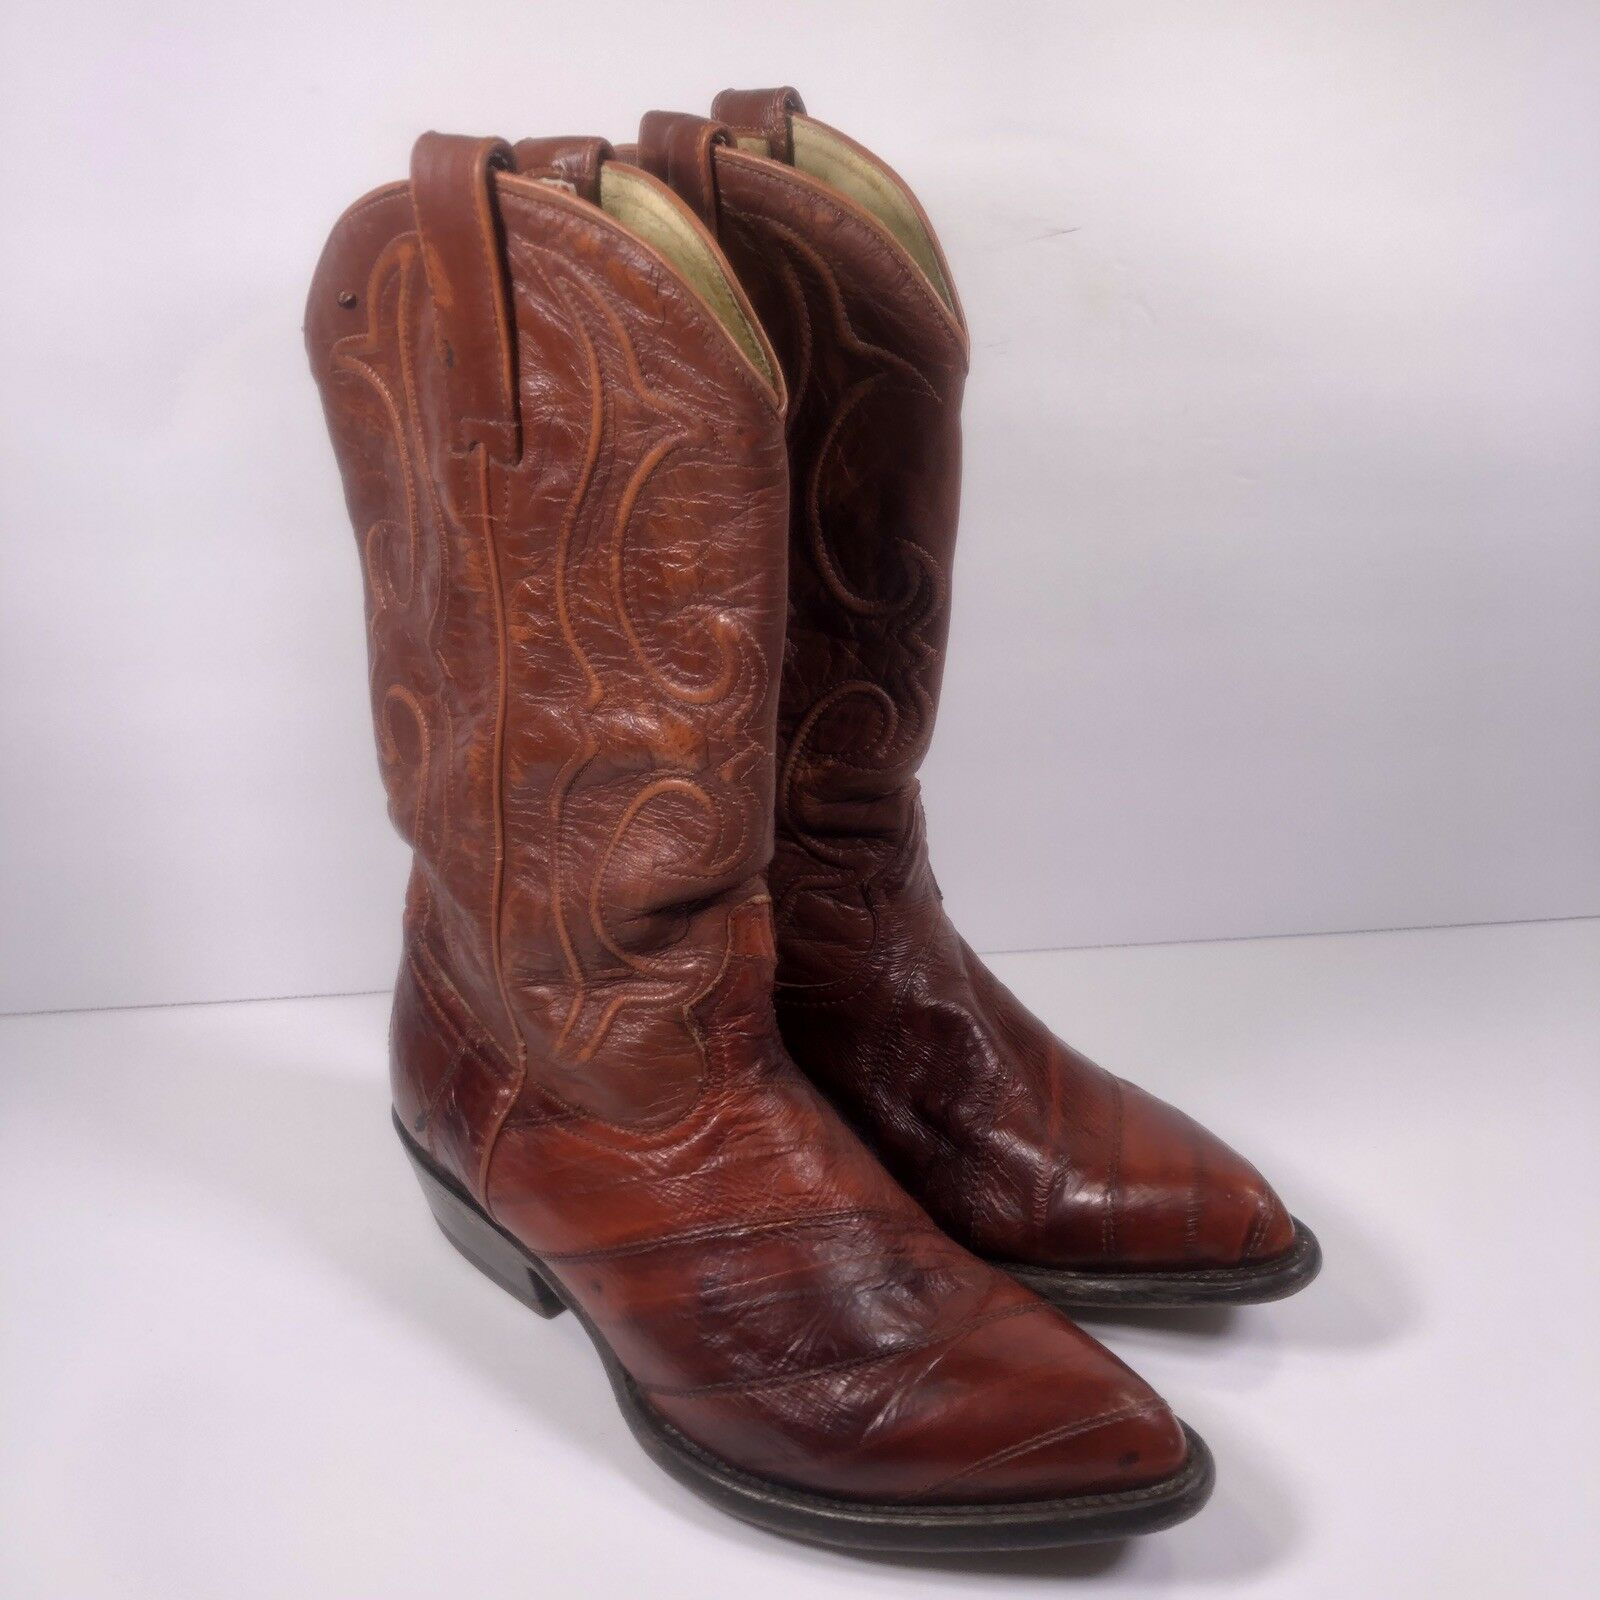 Los Altos Men's Genuine Authentic Eel Skin Burgundy Cowboy  Boots 7EE US